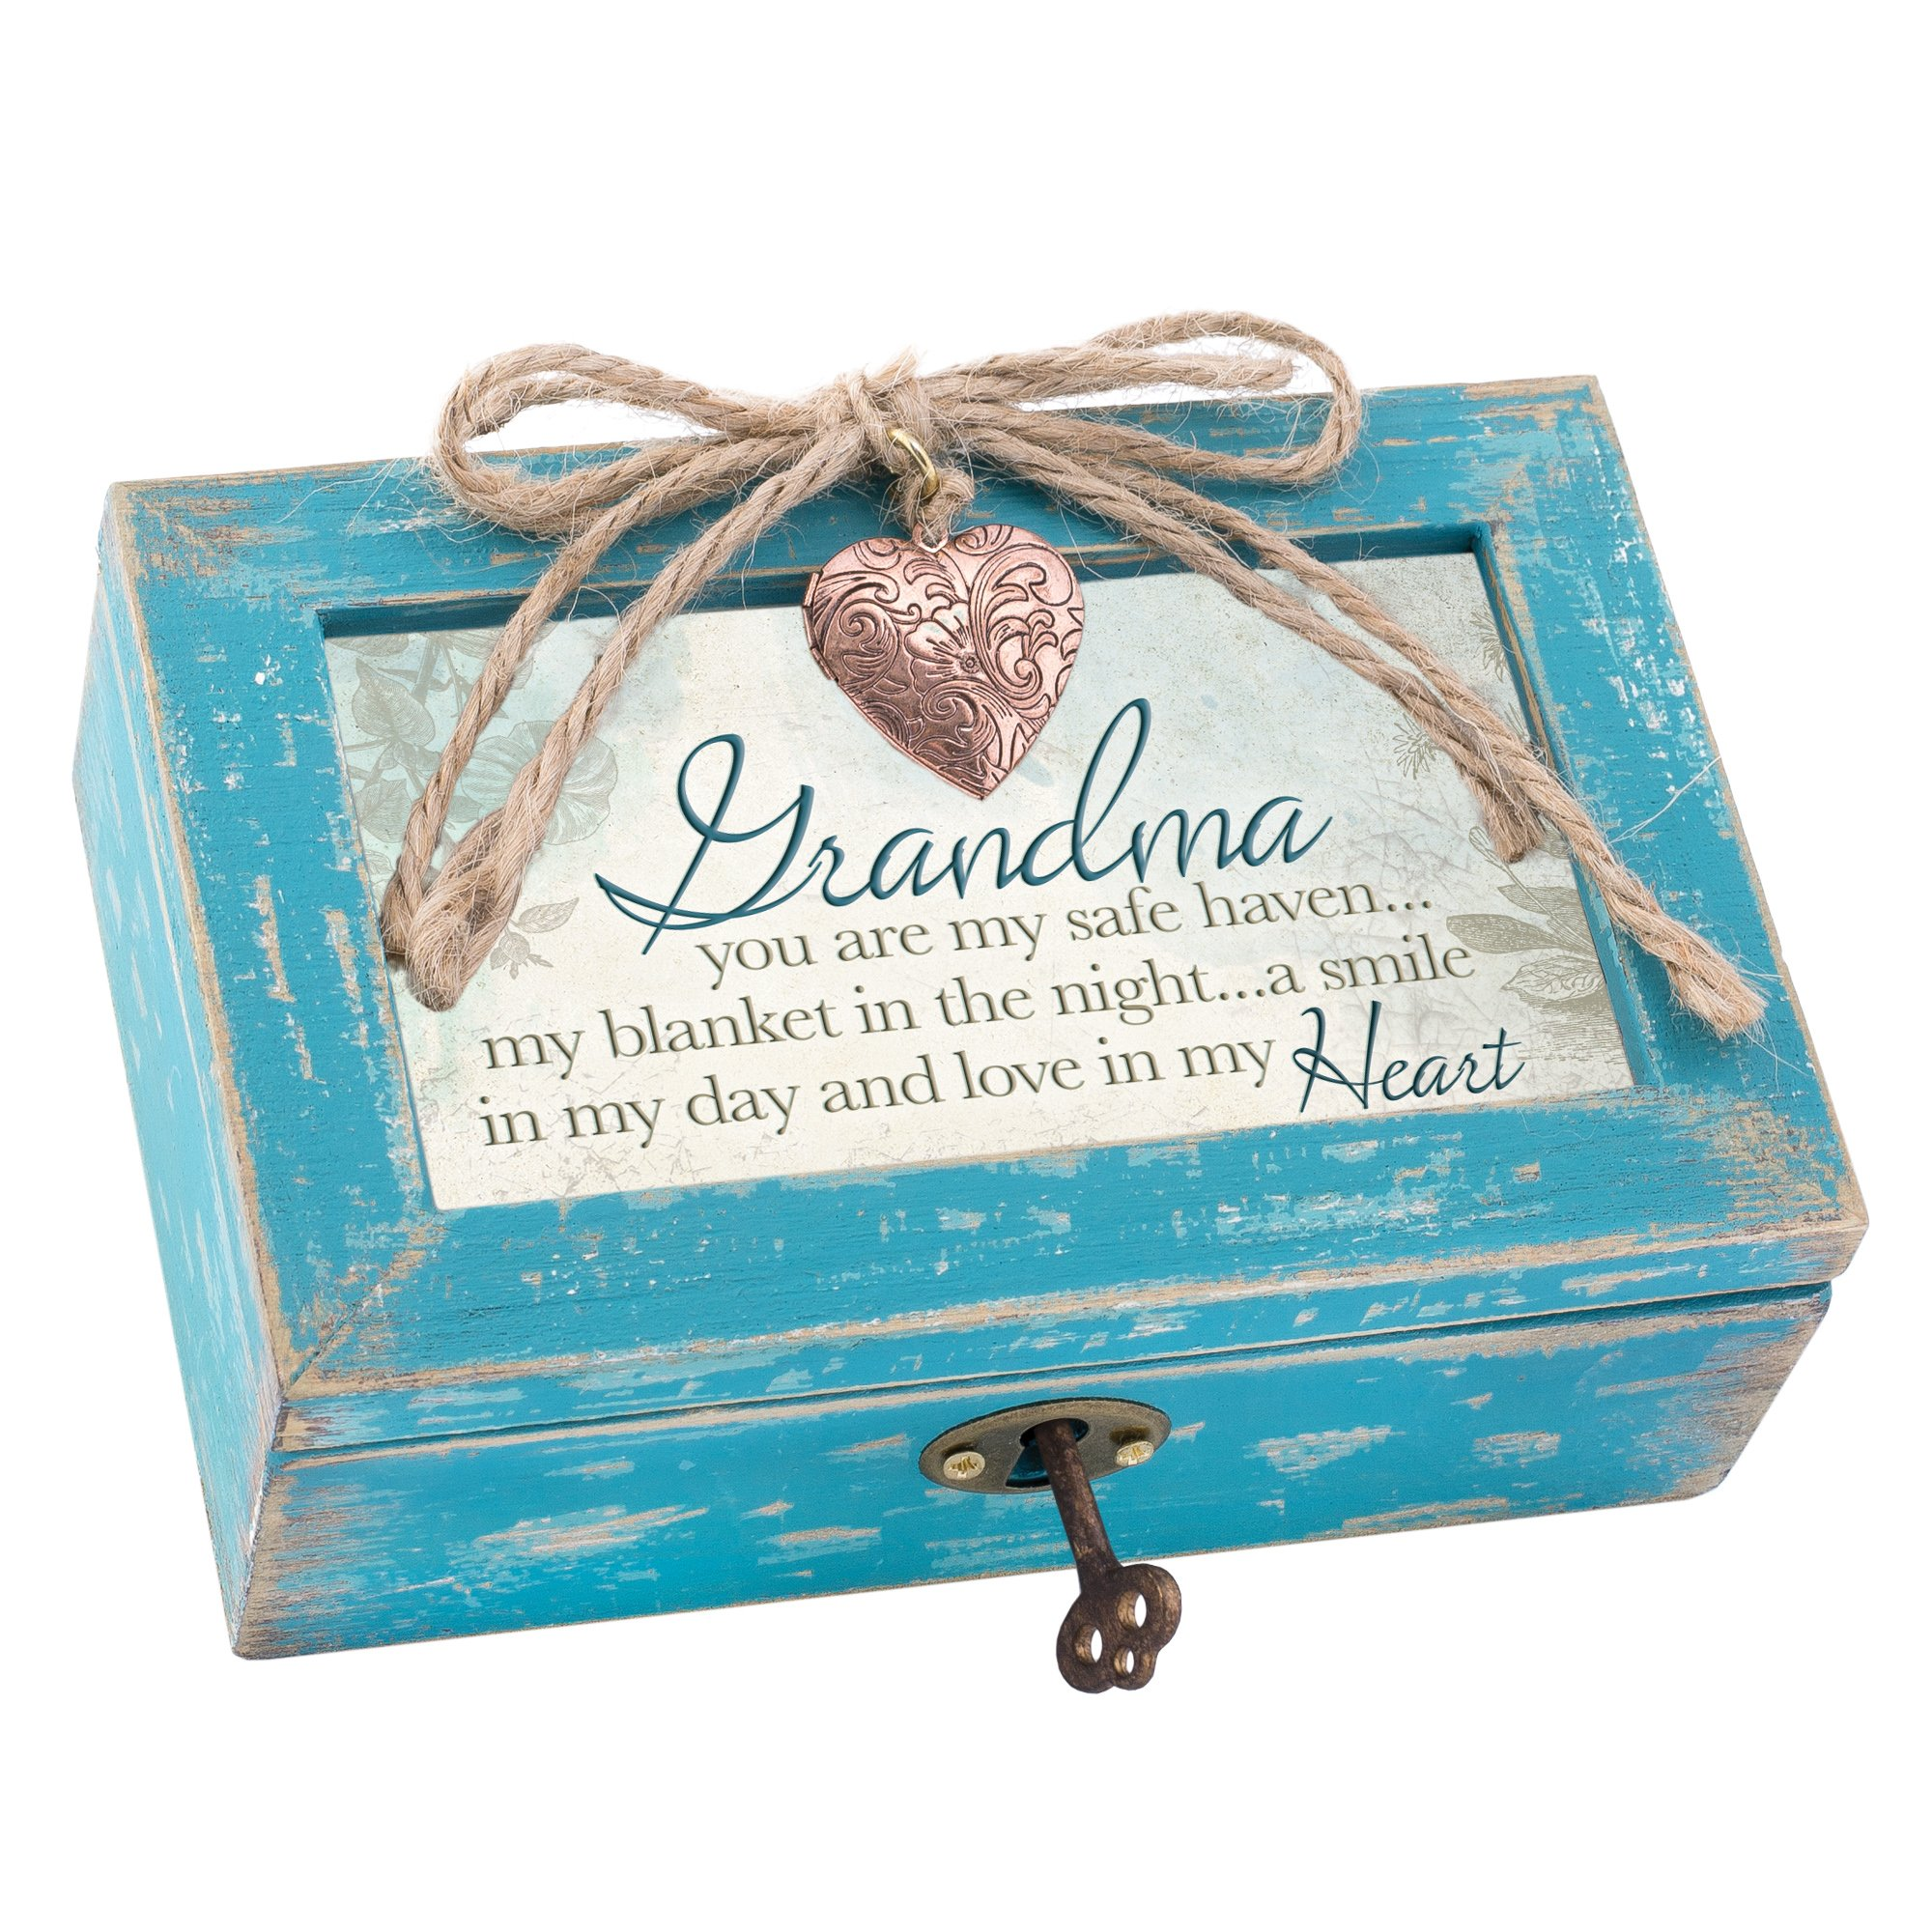 Grandma a Smile in My Heart Teal Wood Locket Jewelry Music Box Plays Tune Wind Beneath My Wings